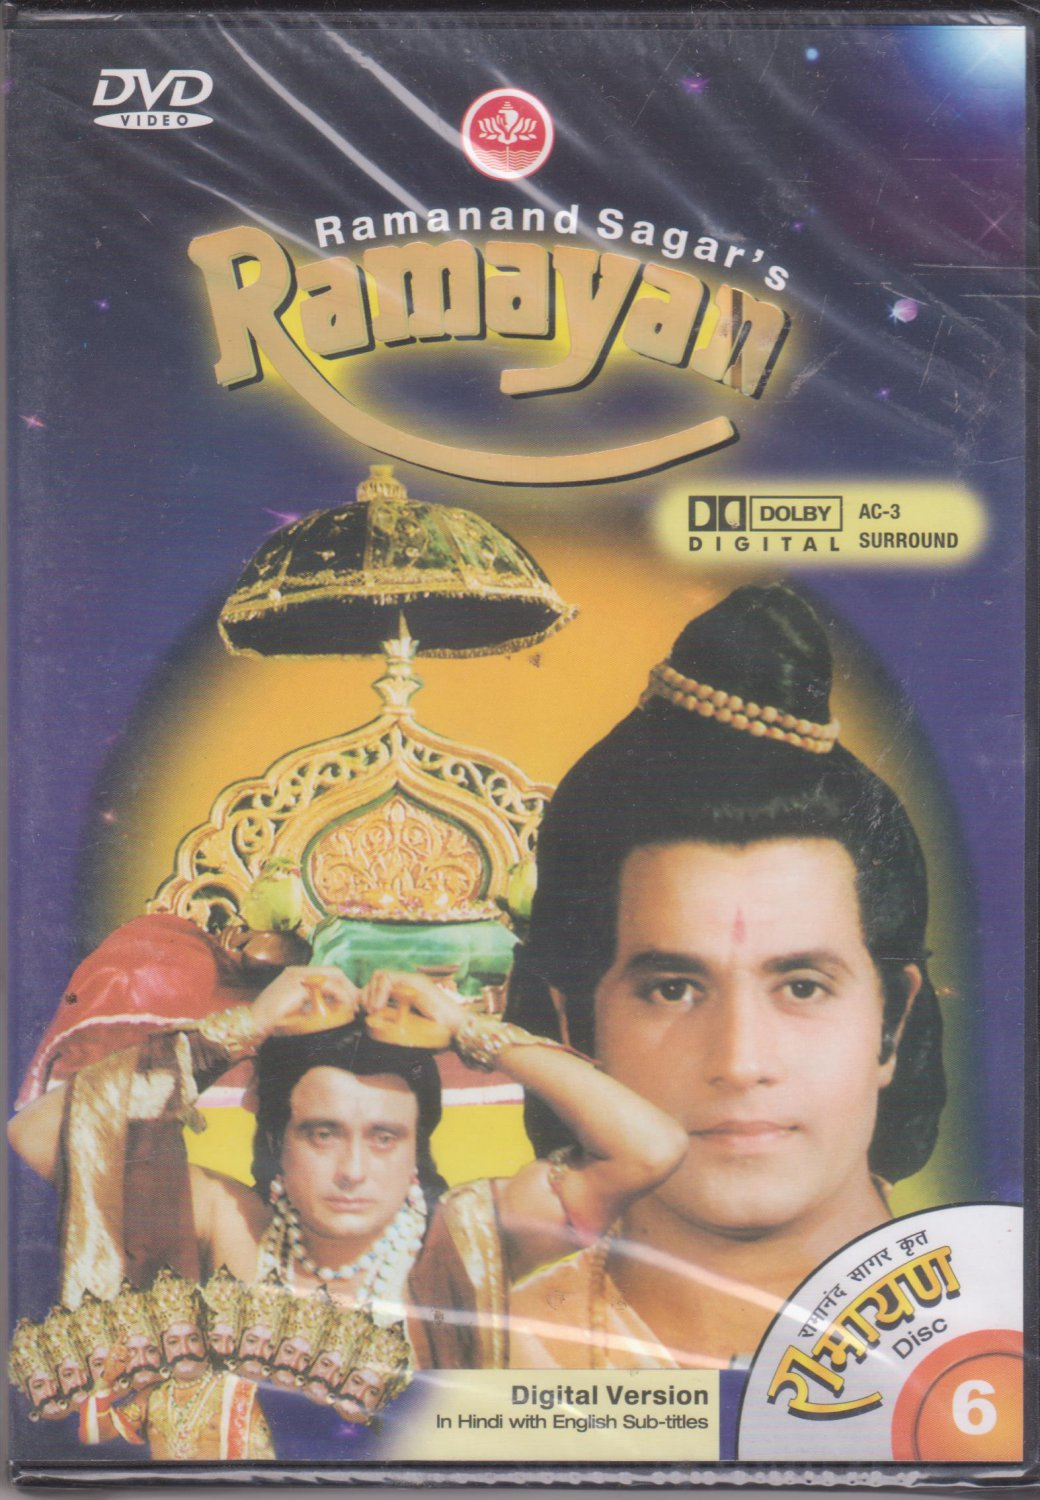 Ramayan - Disc 4 - Episode 14 to 18  - ramanand Sahar's  [Dvd]  1st edition Released